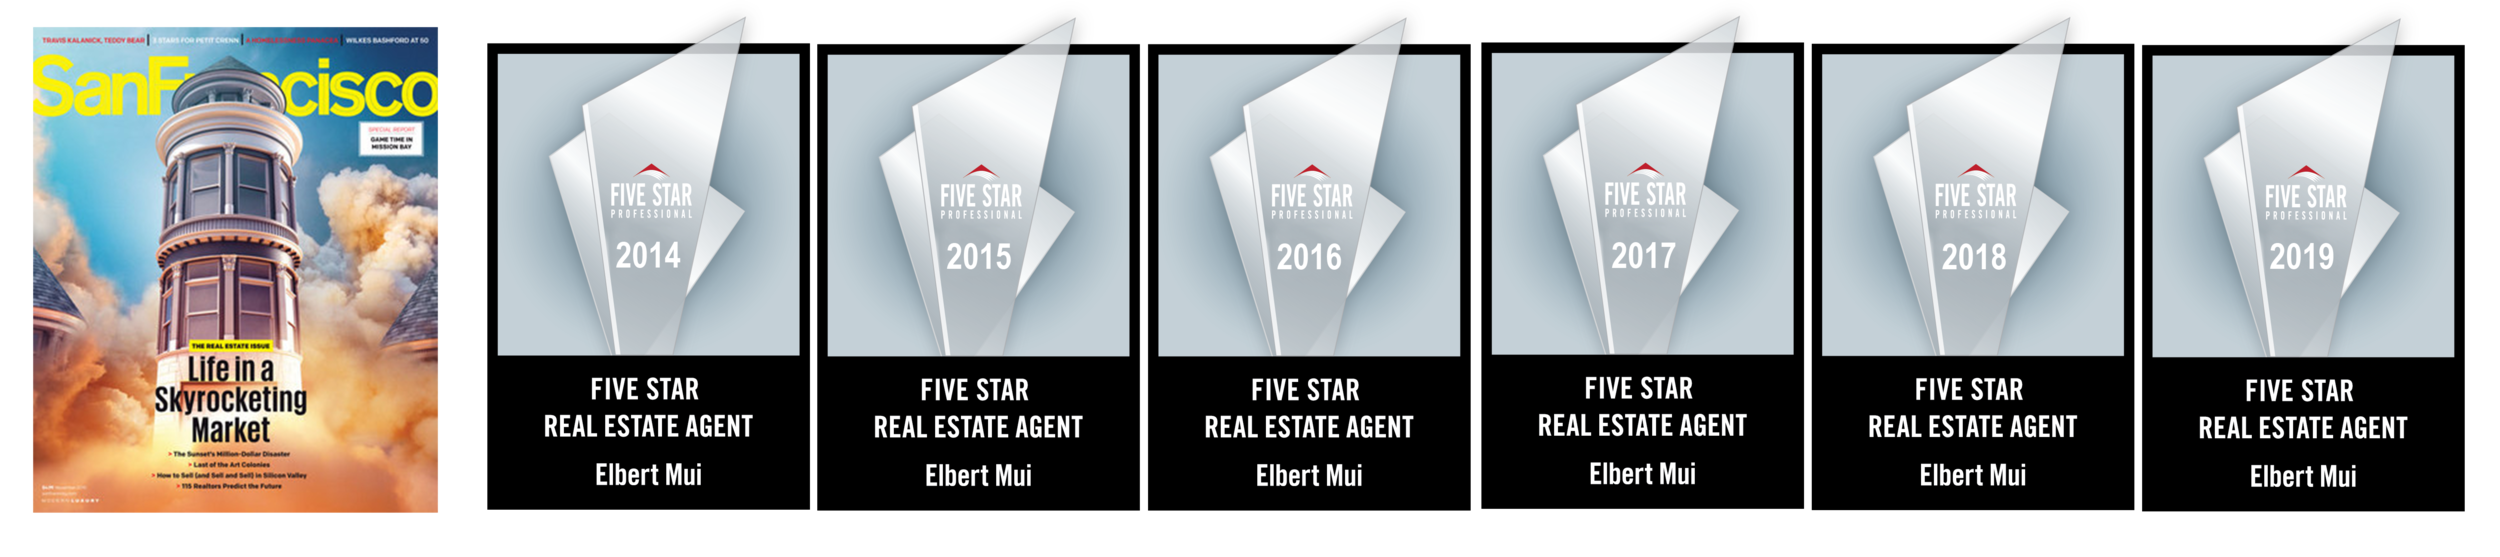 Elbert has been recognized multiple times for awards as a top producer and Five Star Real Estate Agent (as featured in San Francisco Magazine).